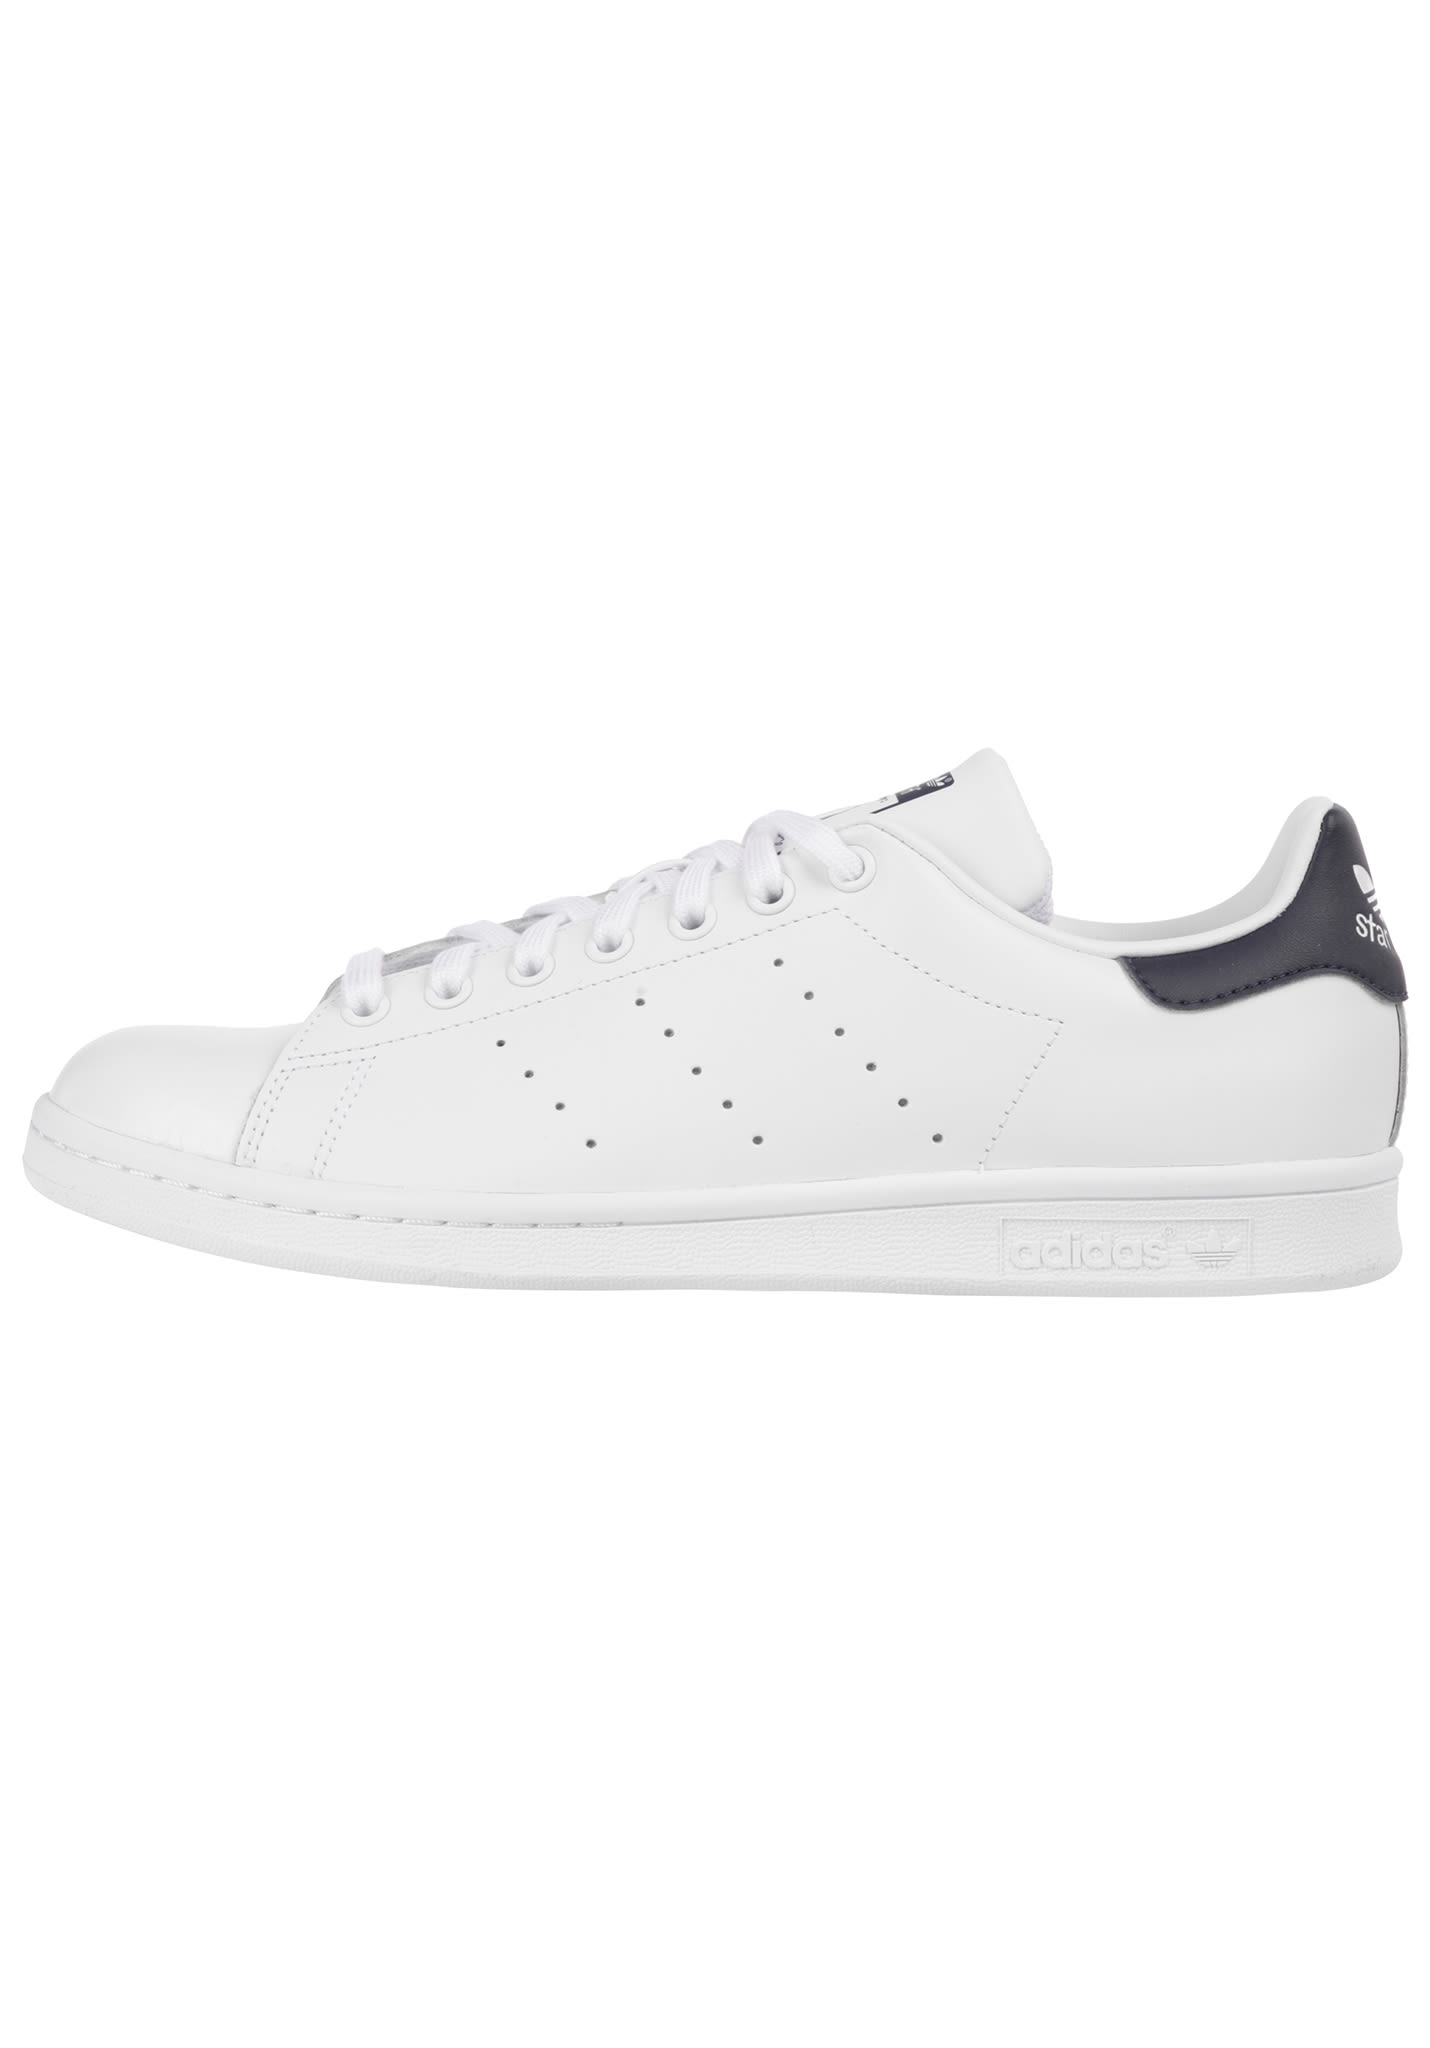 8ab0b10990d00 ADIDAS ORIGINALS Stan Smith - Zapatillas - Blanco - Planet Sports